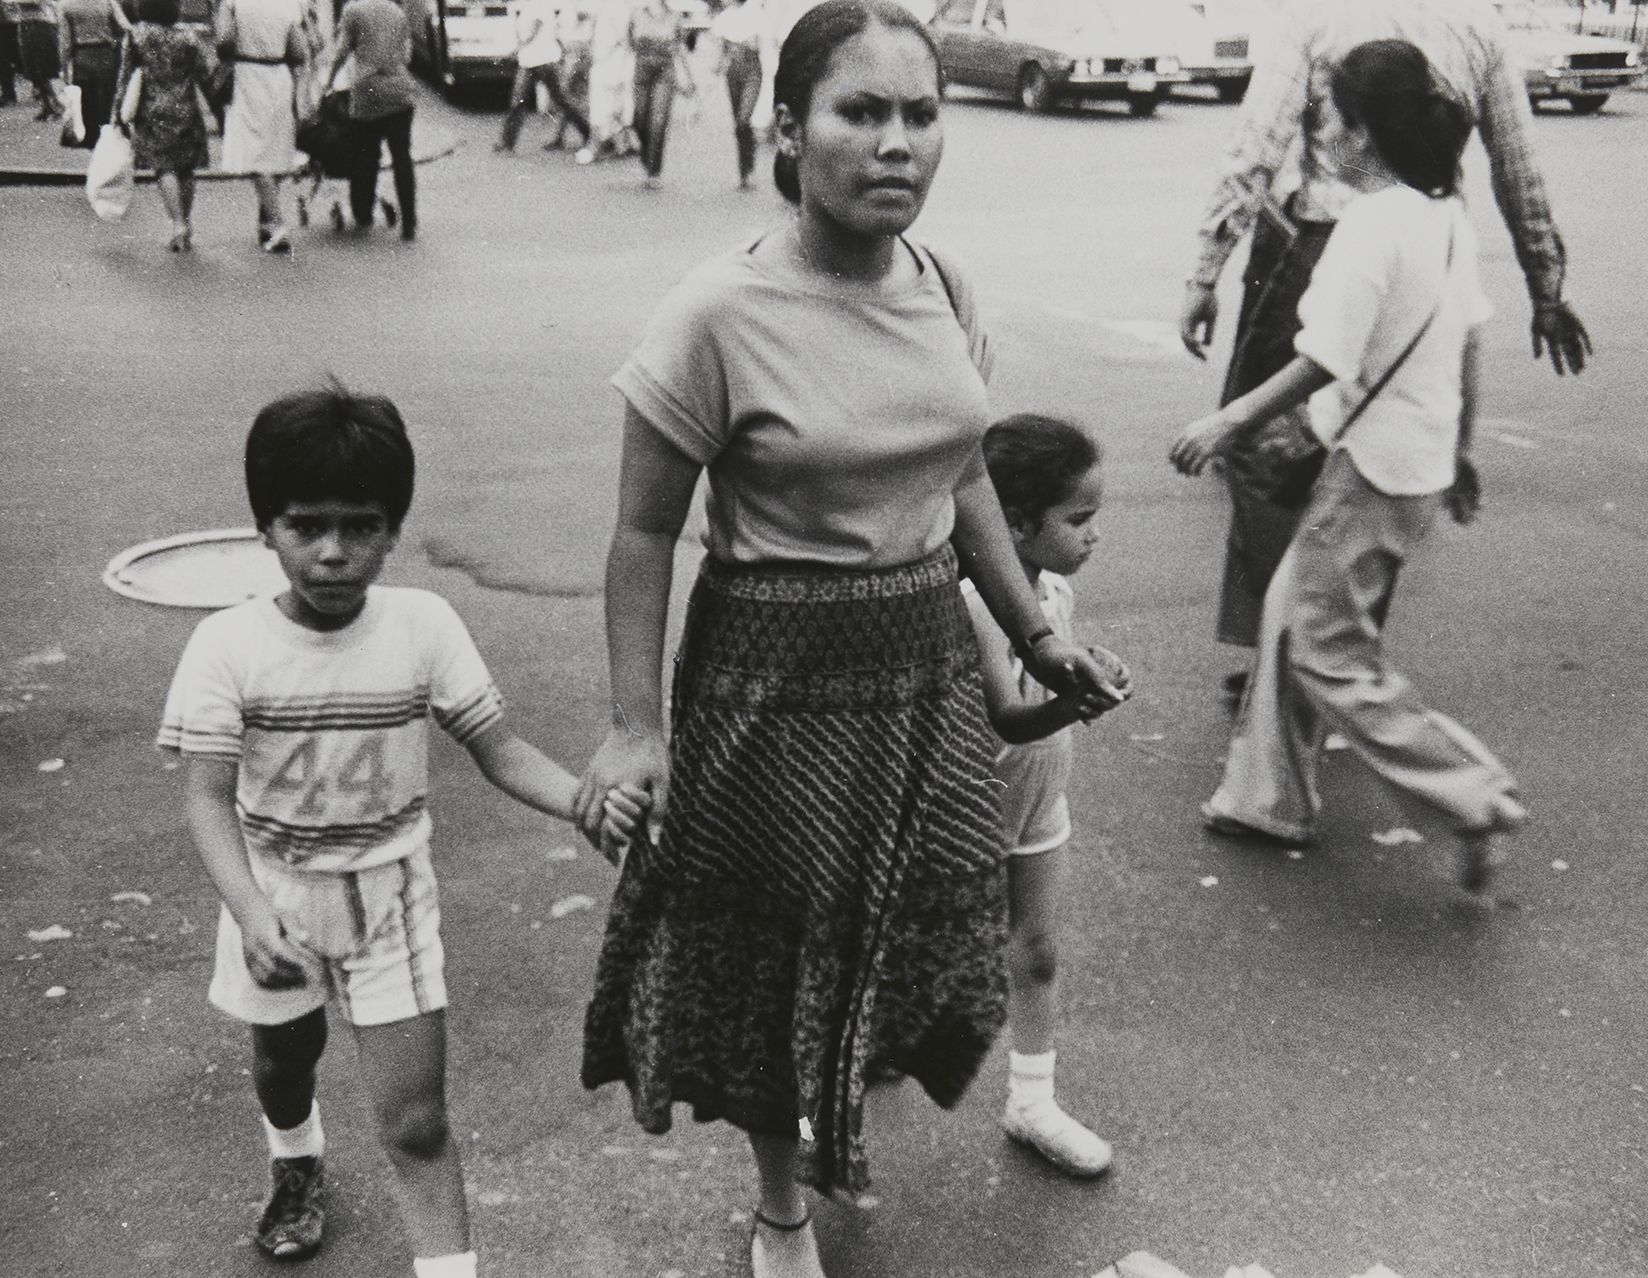 Rudy Burckhardt Untitled, New York (Woman with two children), c. 1985